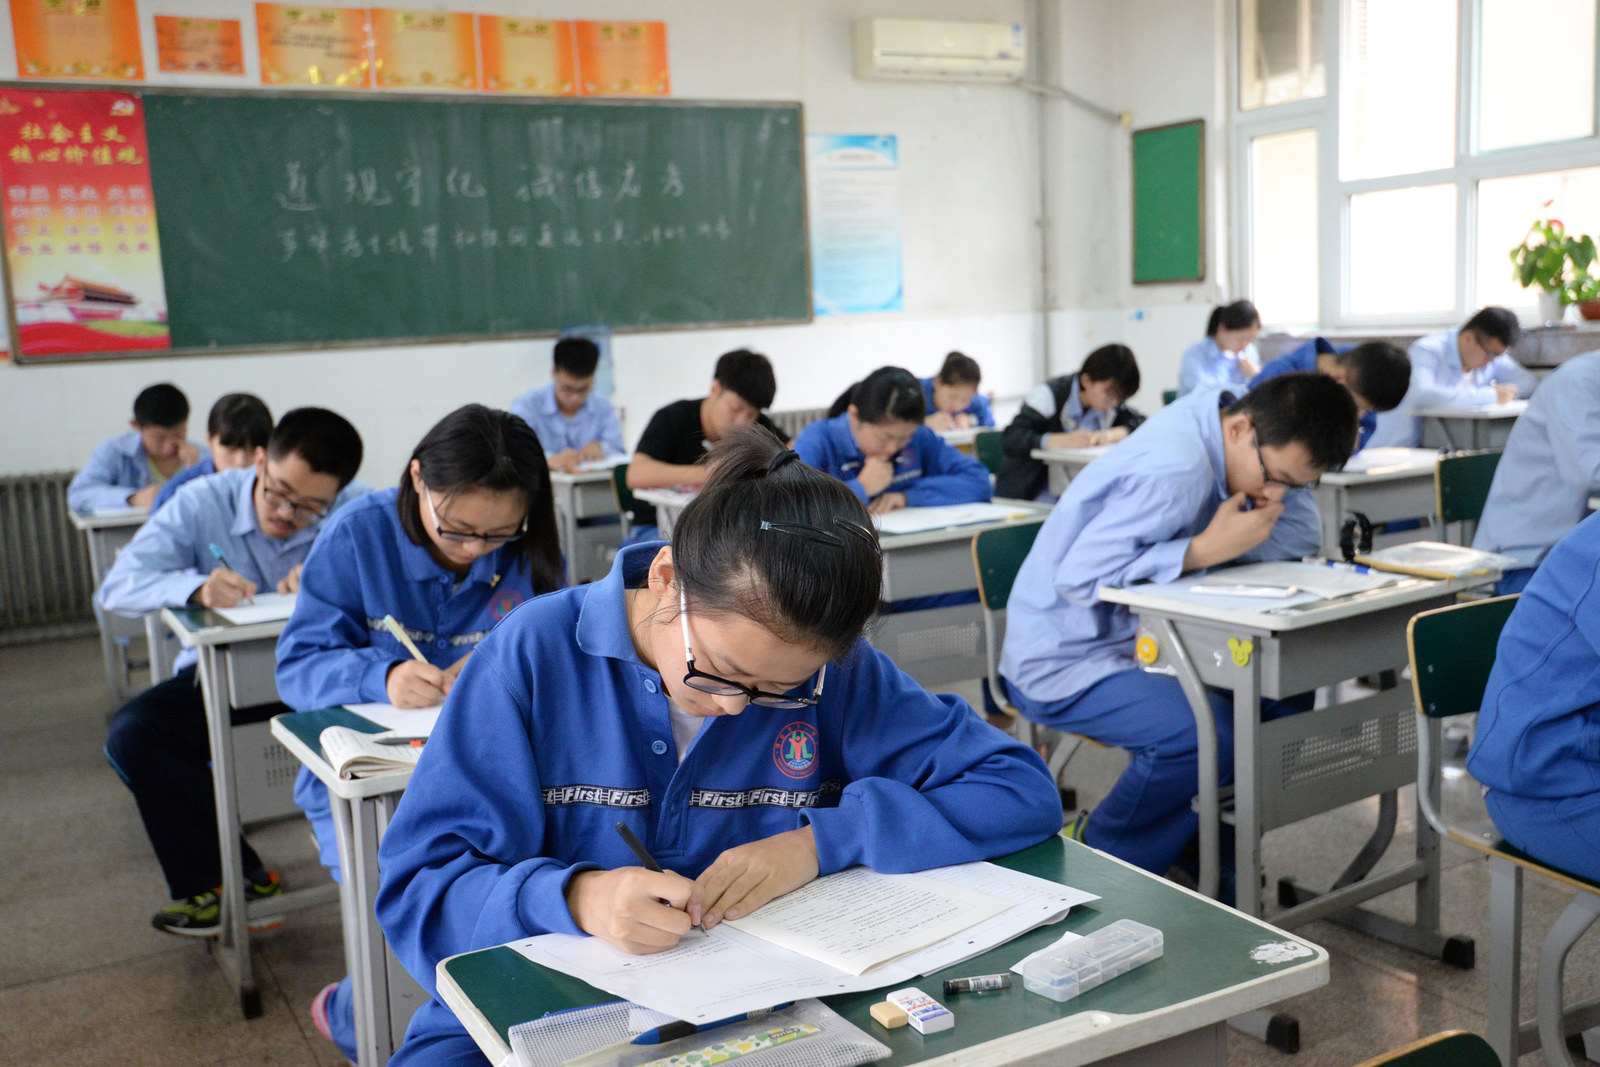 More Chinese Students Are Coming To Us High Schools To Get